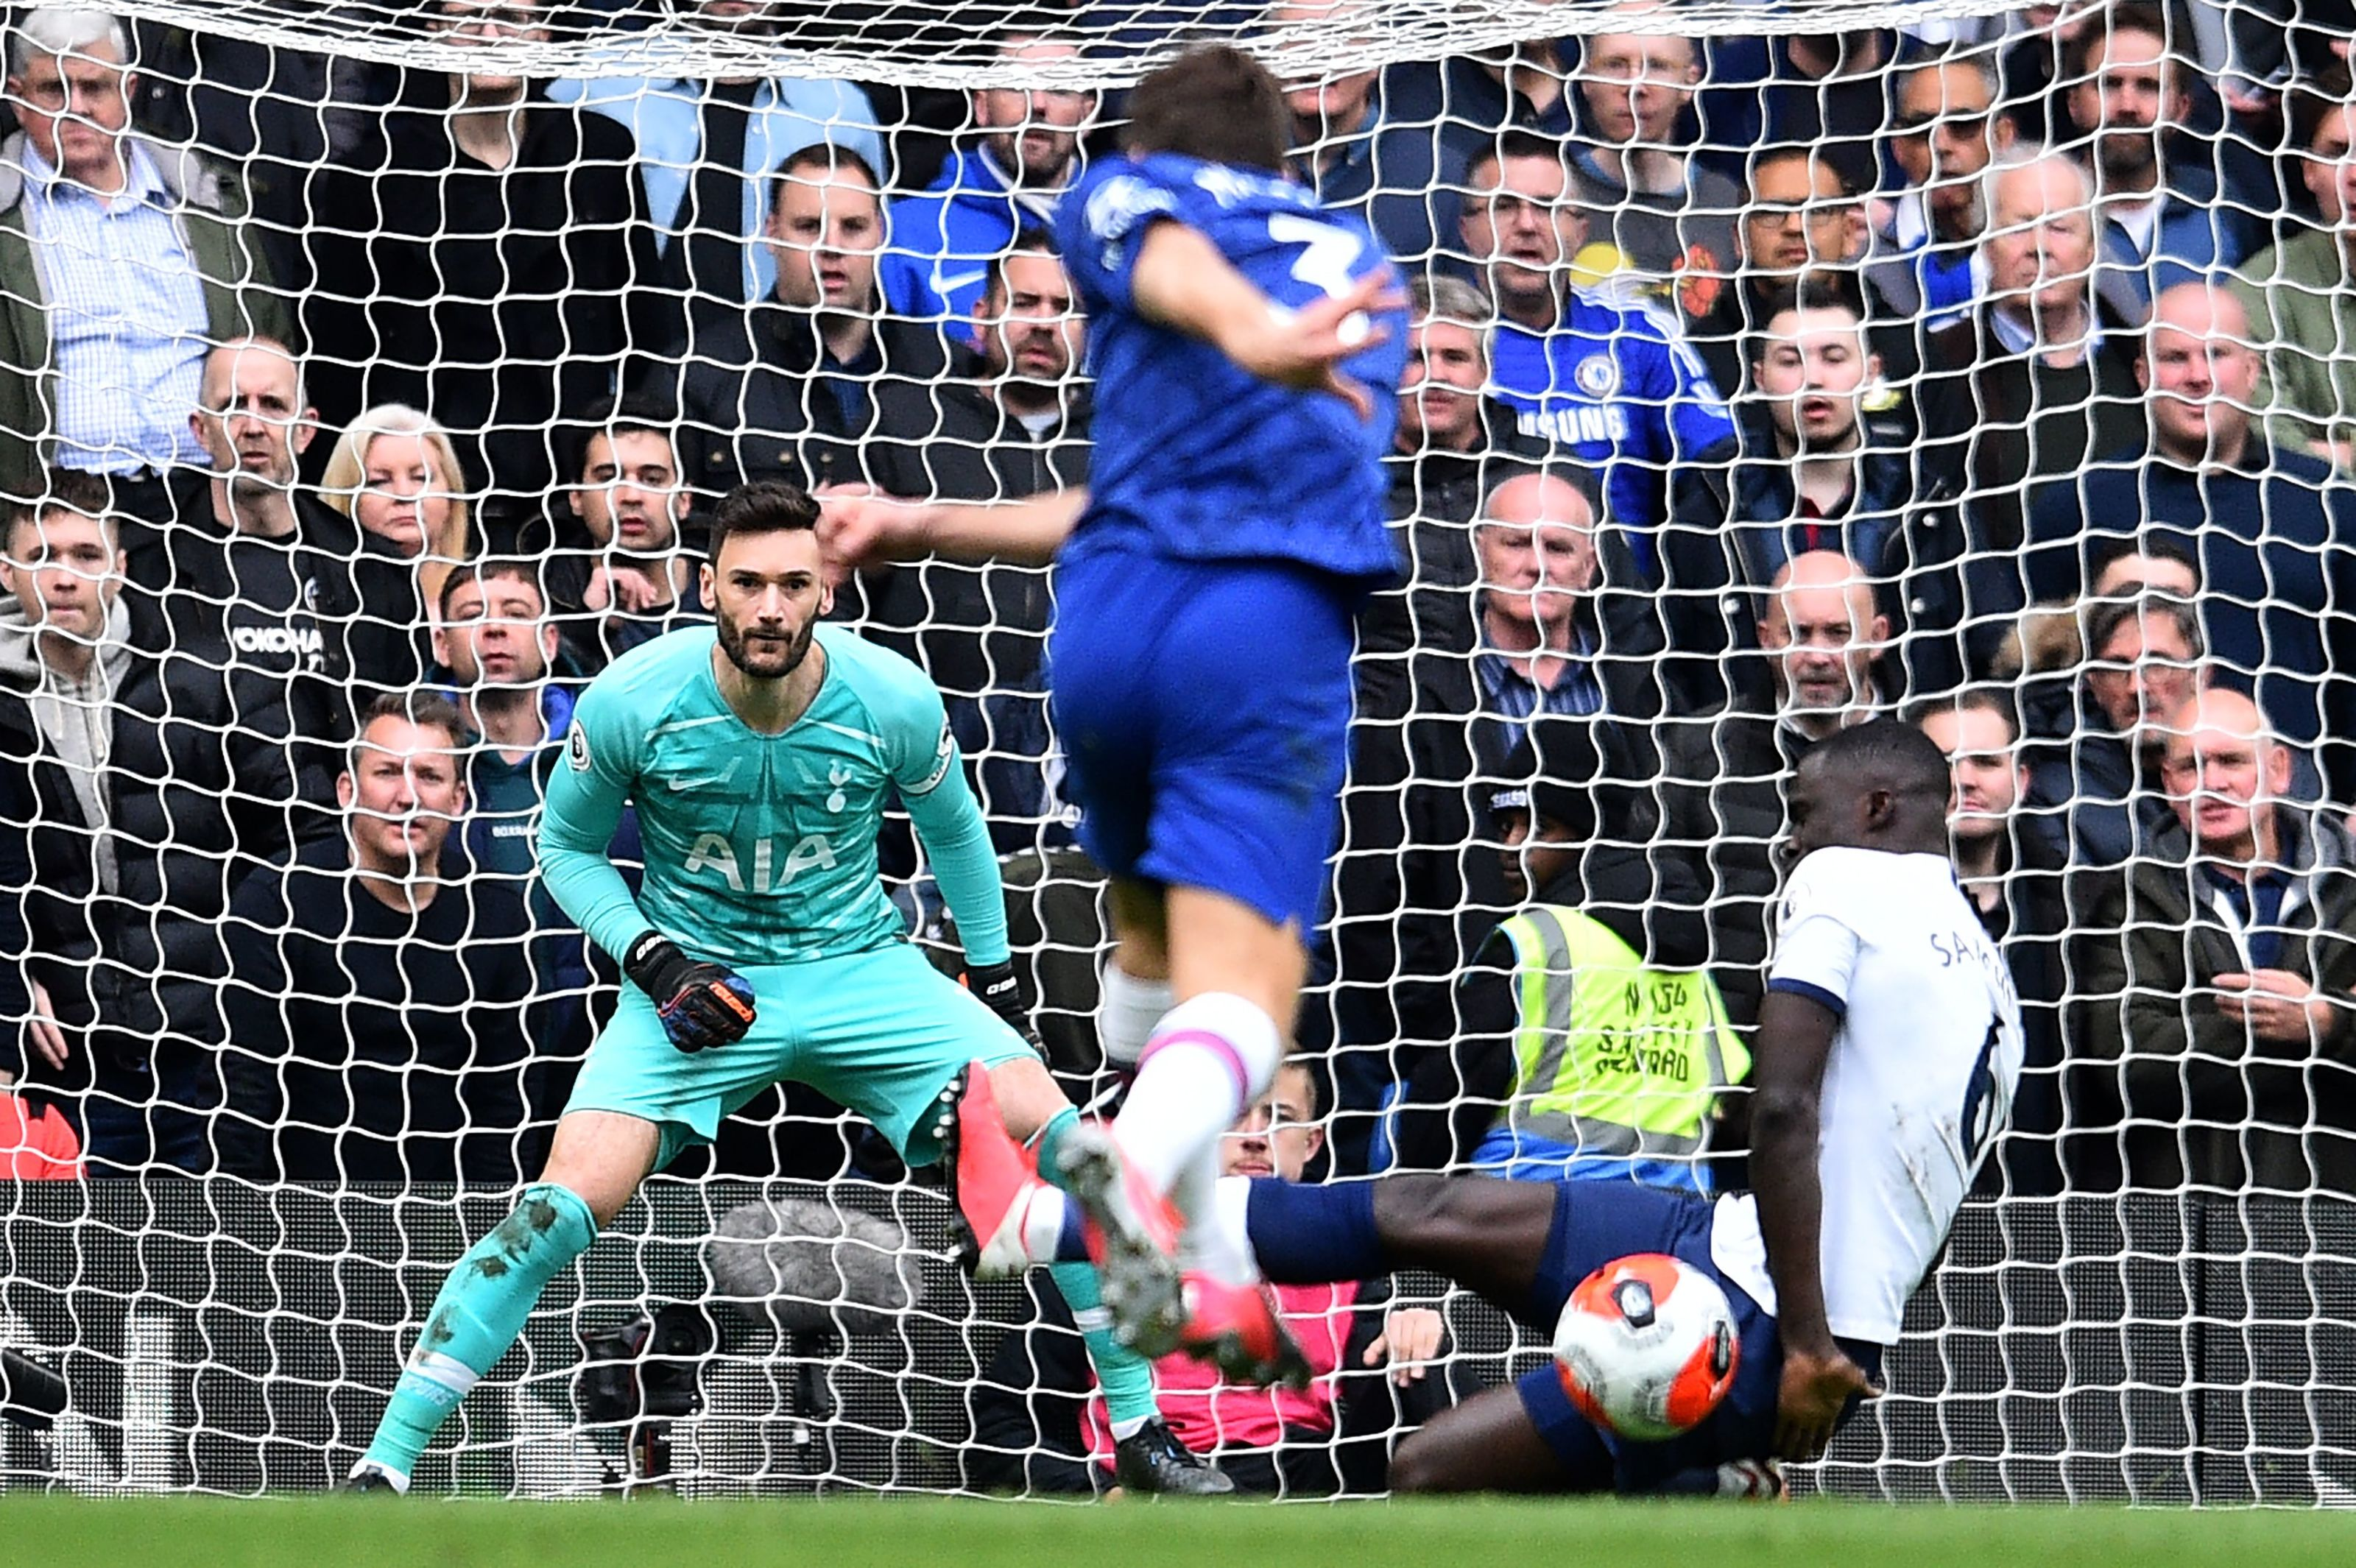 Chelsea defeat showcases many issues at Tottenham Hotspur